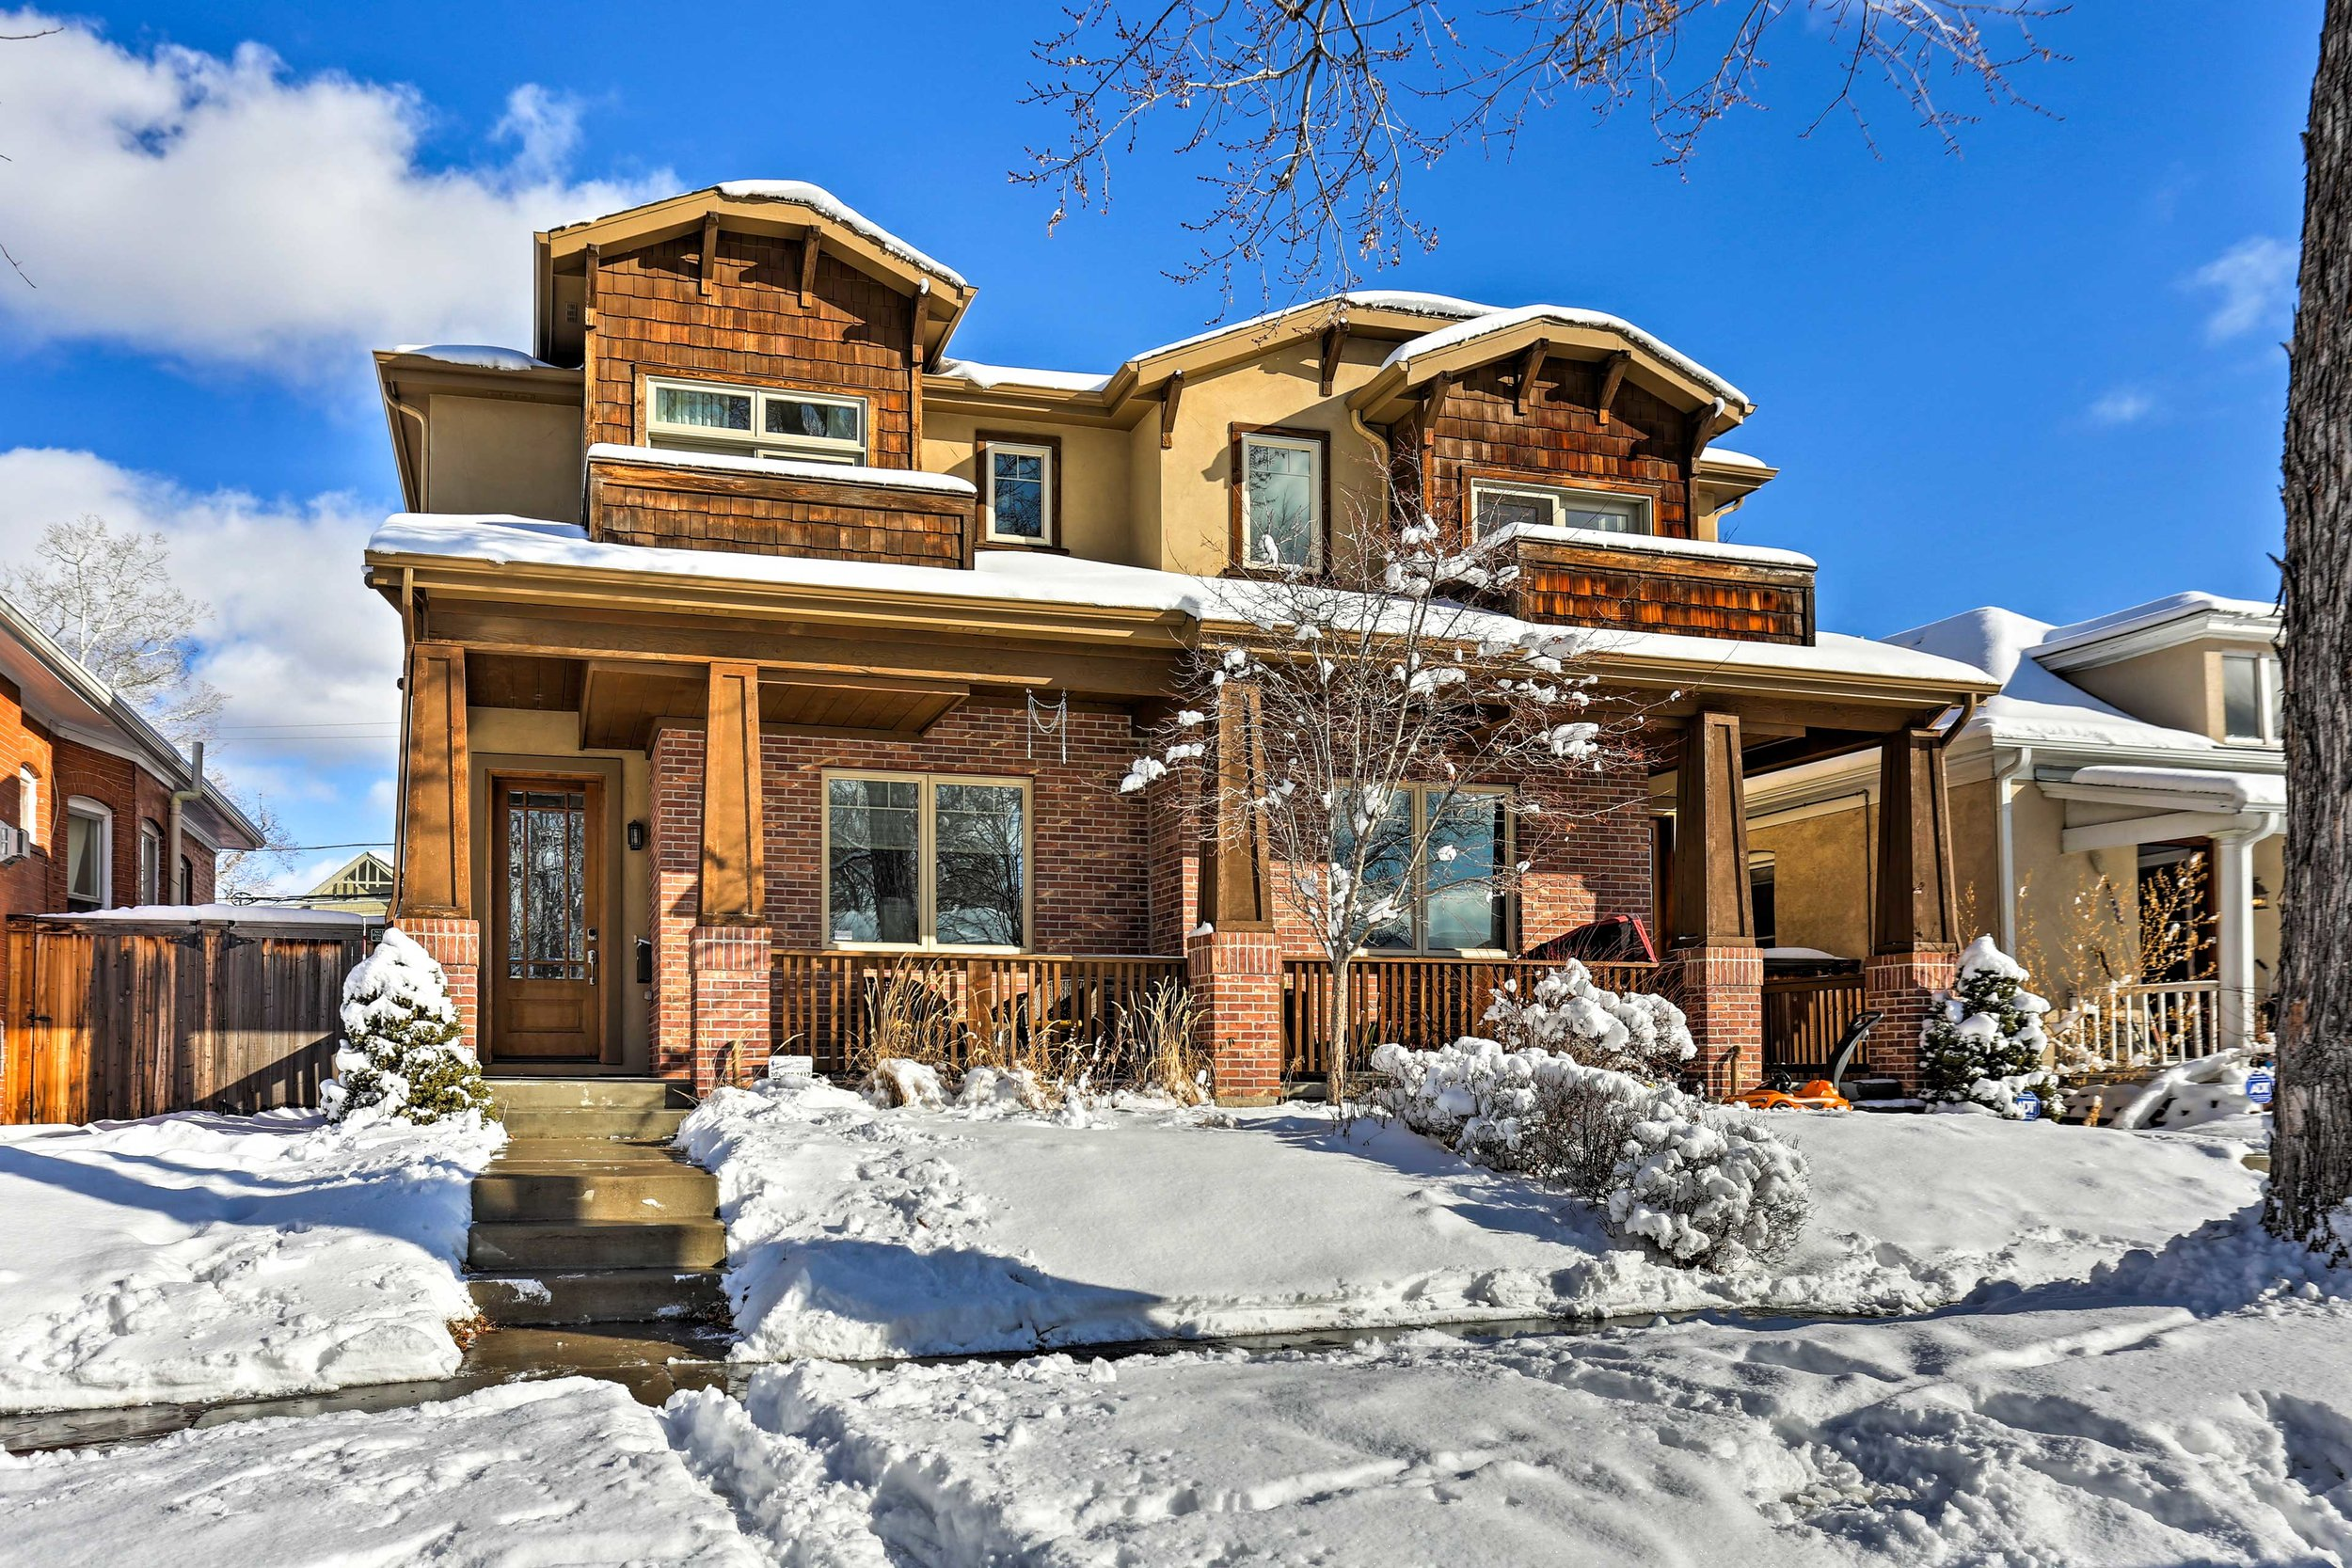 Denver Real Estate Photography Liberato04.jpg